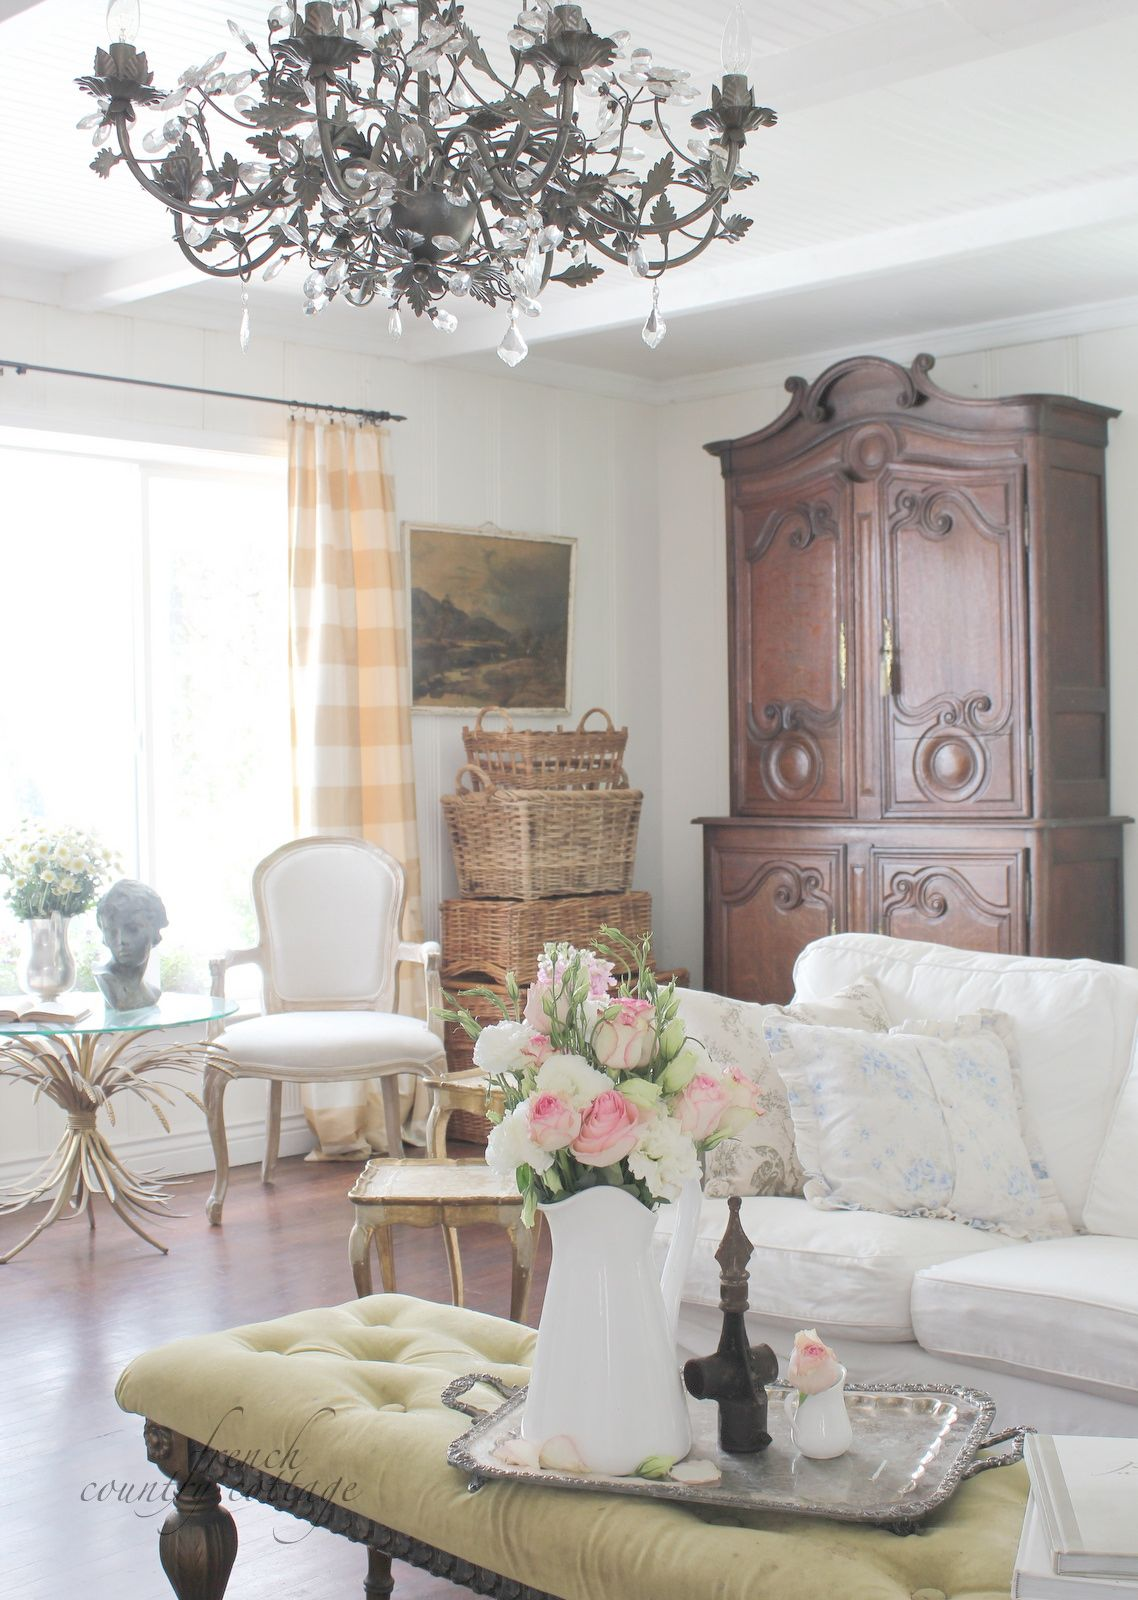 French Country Cottage Our Home French Country Living Room Living Room Decor Country Country Living Room Design